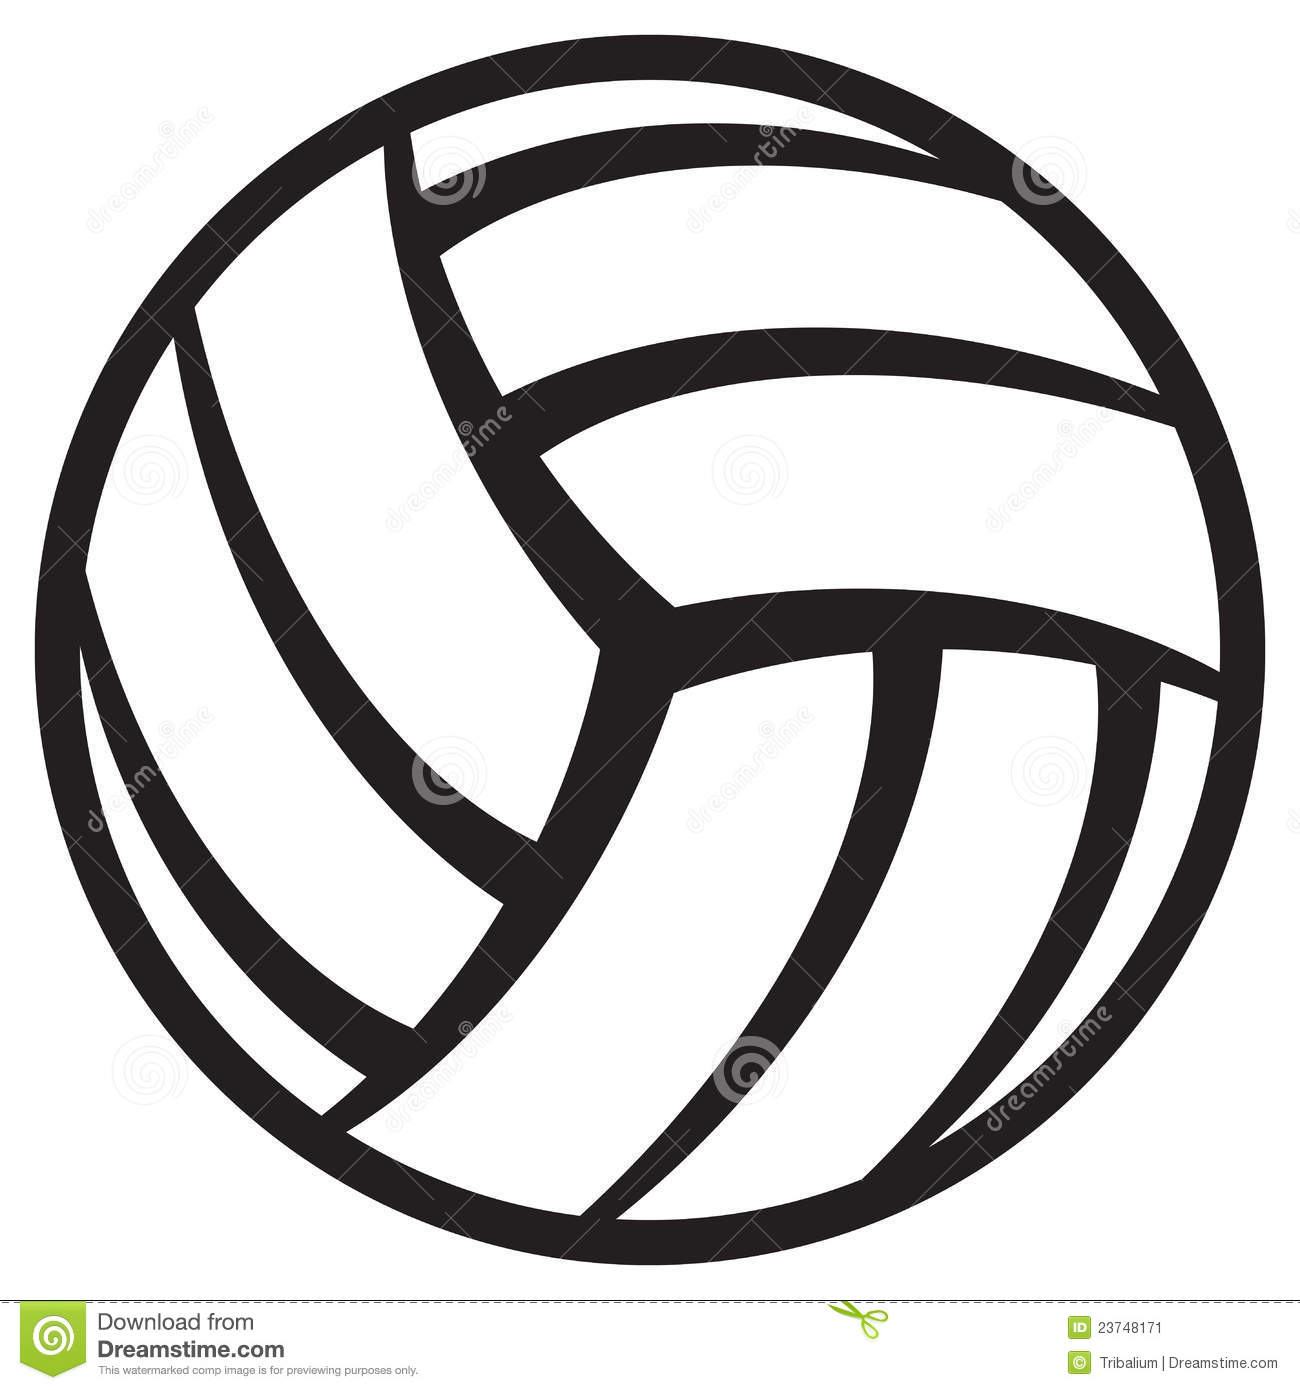 Volleyball clipart clipart cliparts for -Volleyball clipart clipart cliparts for you-11